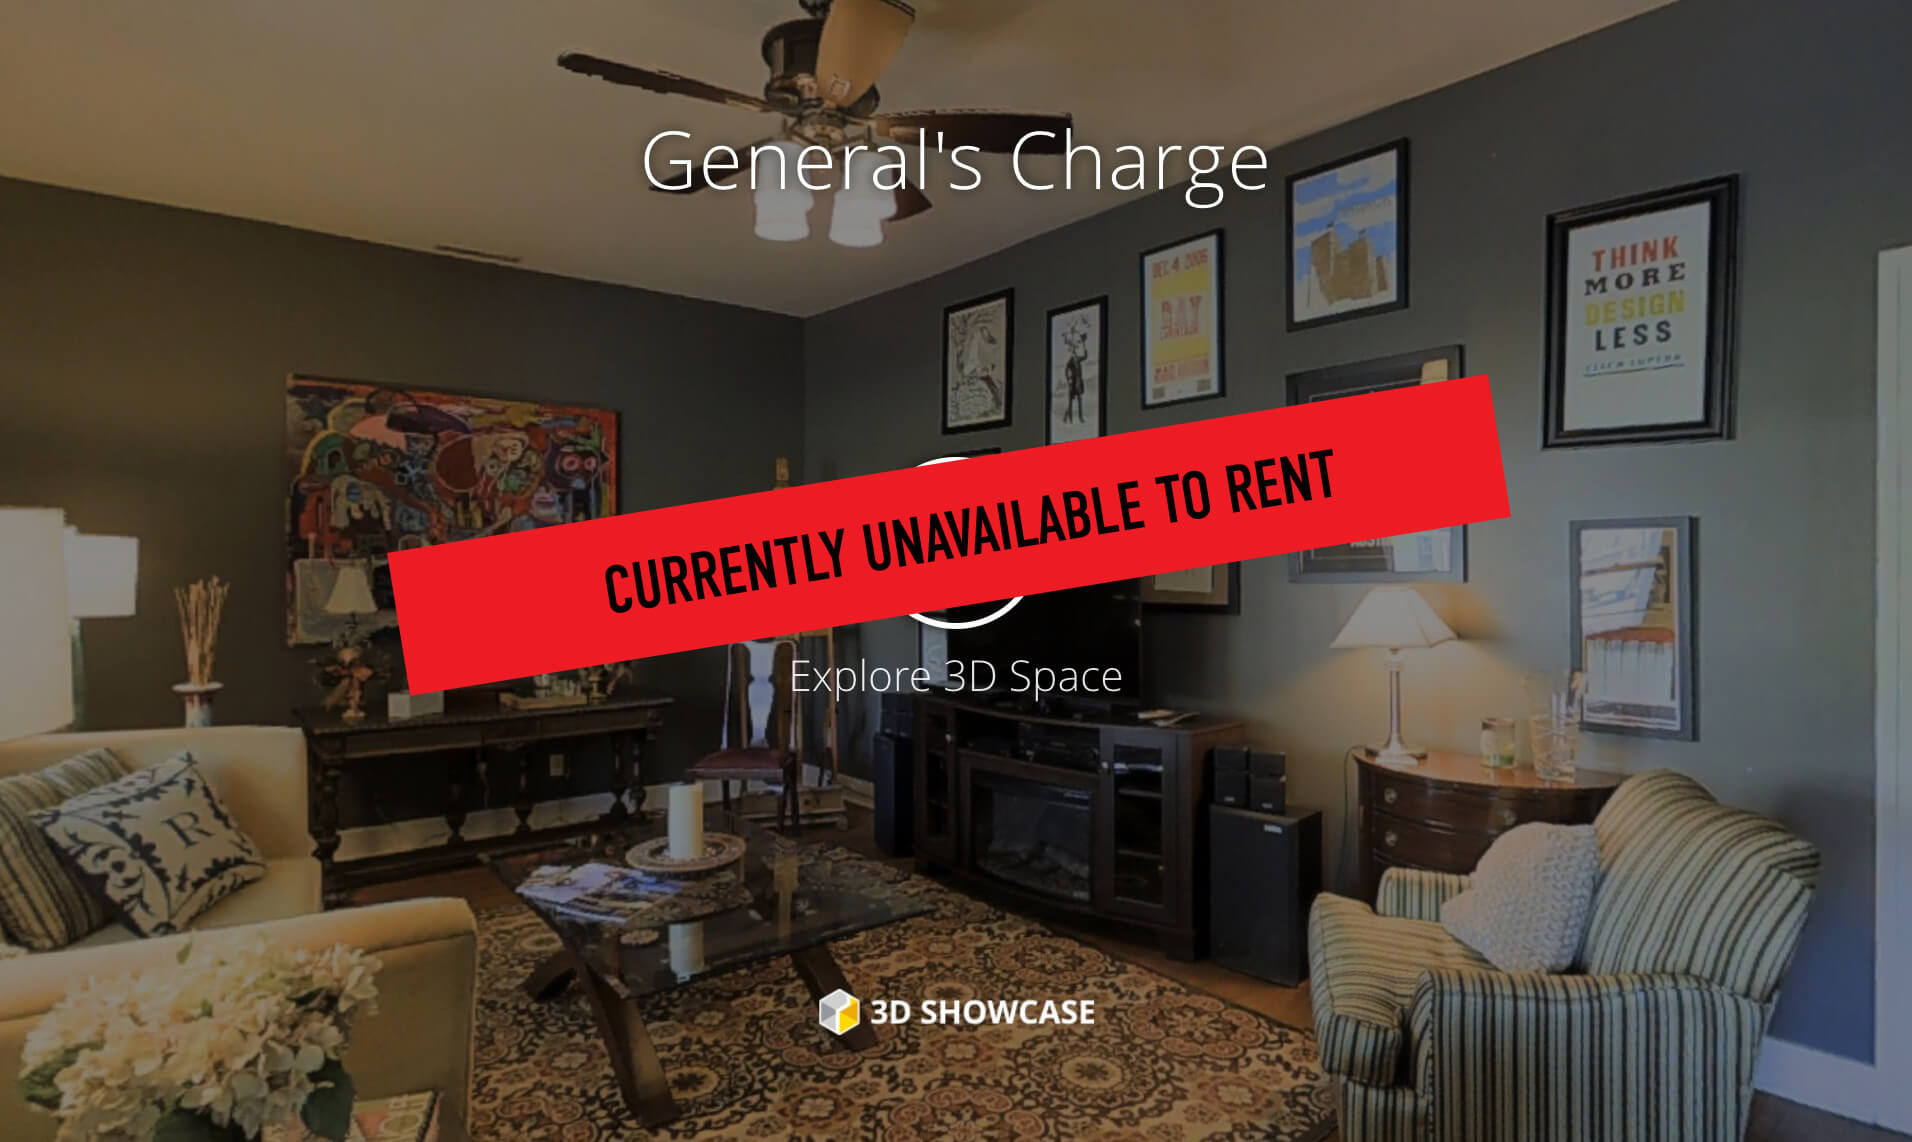 Generals_Charge_Vacation_Rental_Downtown_Franklin_TN_Rogers_Homeport.jpg